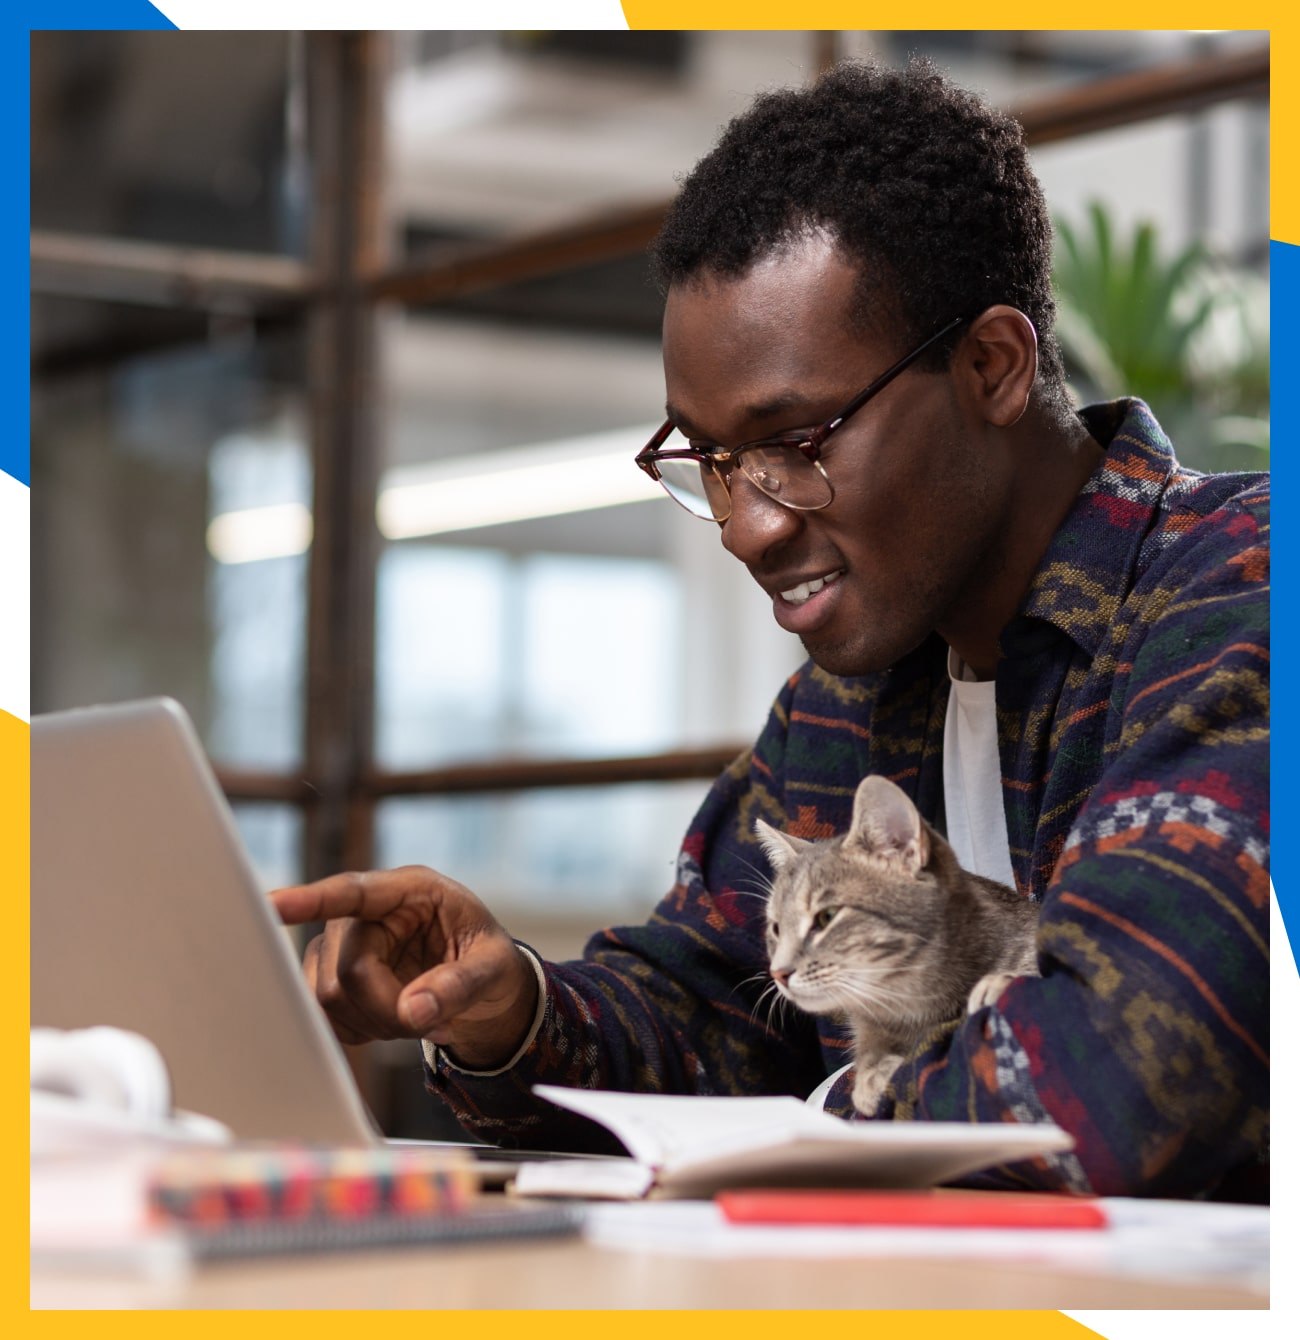 A young man holding a curious cat and pointing at his laptop screen